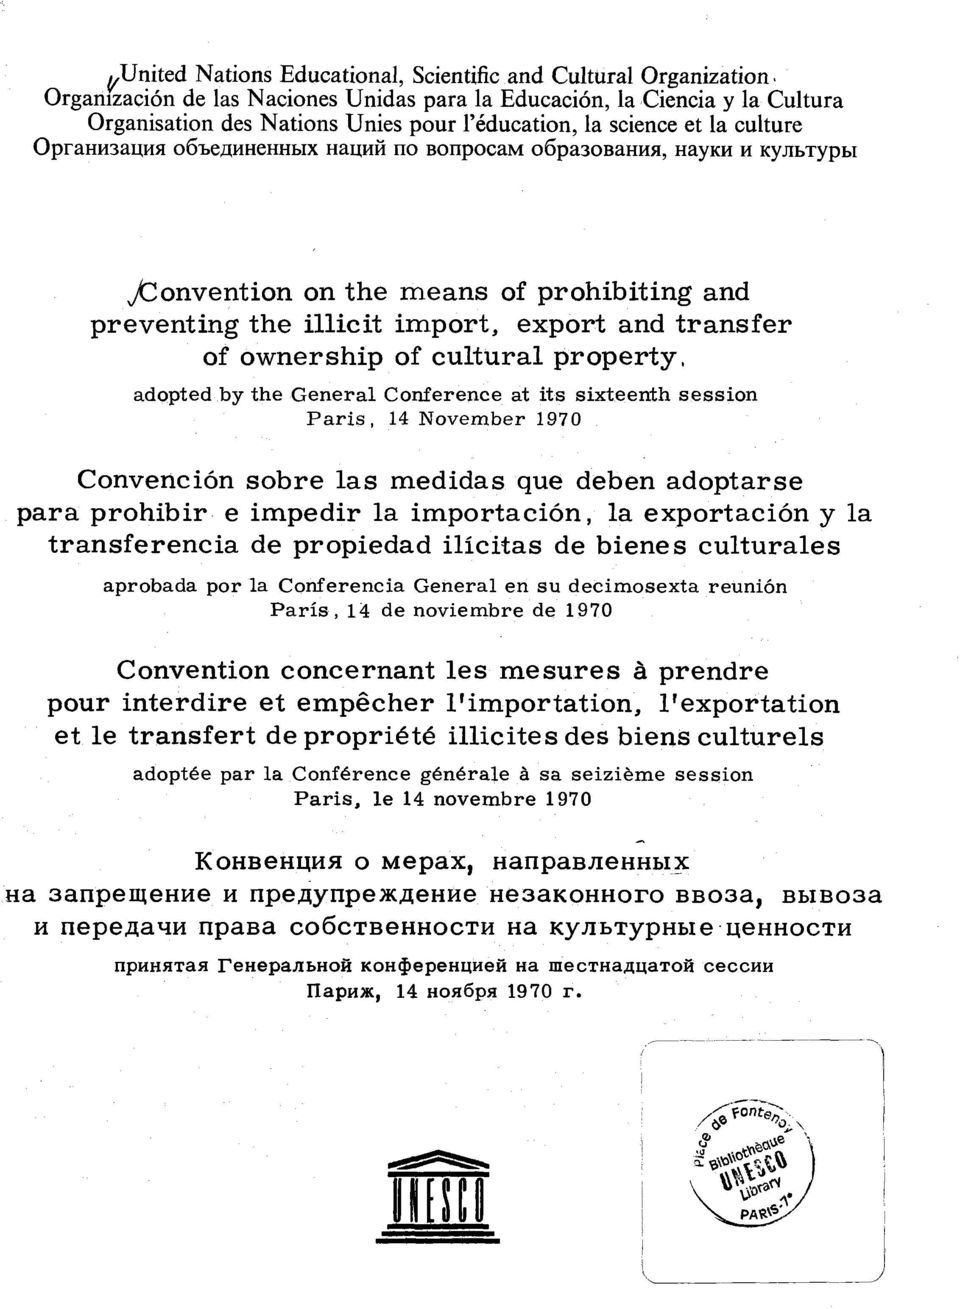 transfer of ownership of cultural property, adopted by the General Conference at its sixteenth session Paris, 14 November 1970 Convención sobre las medidas que deben adoptarse para prohibir e impedir